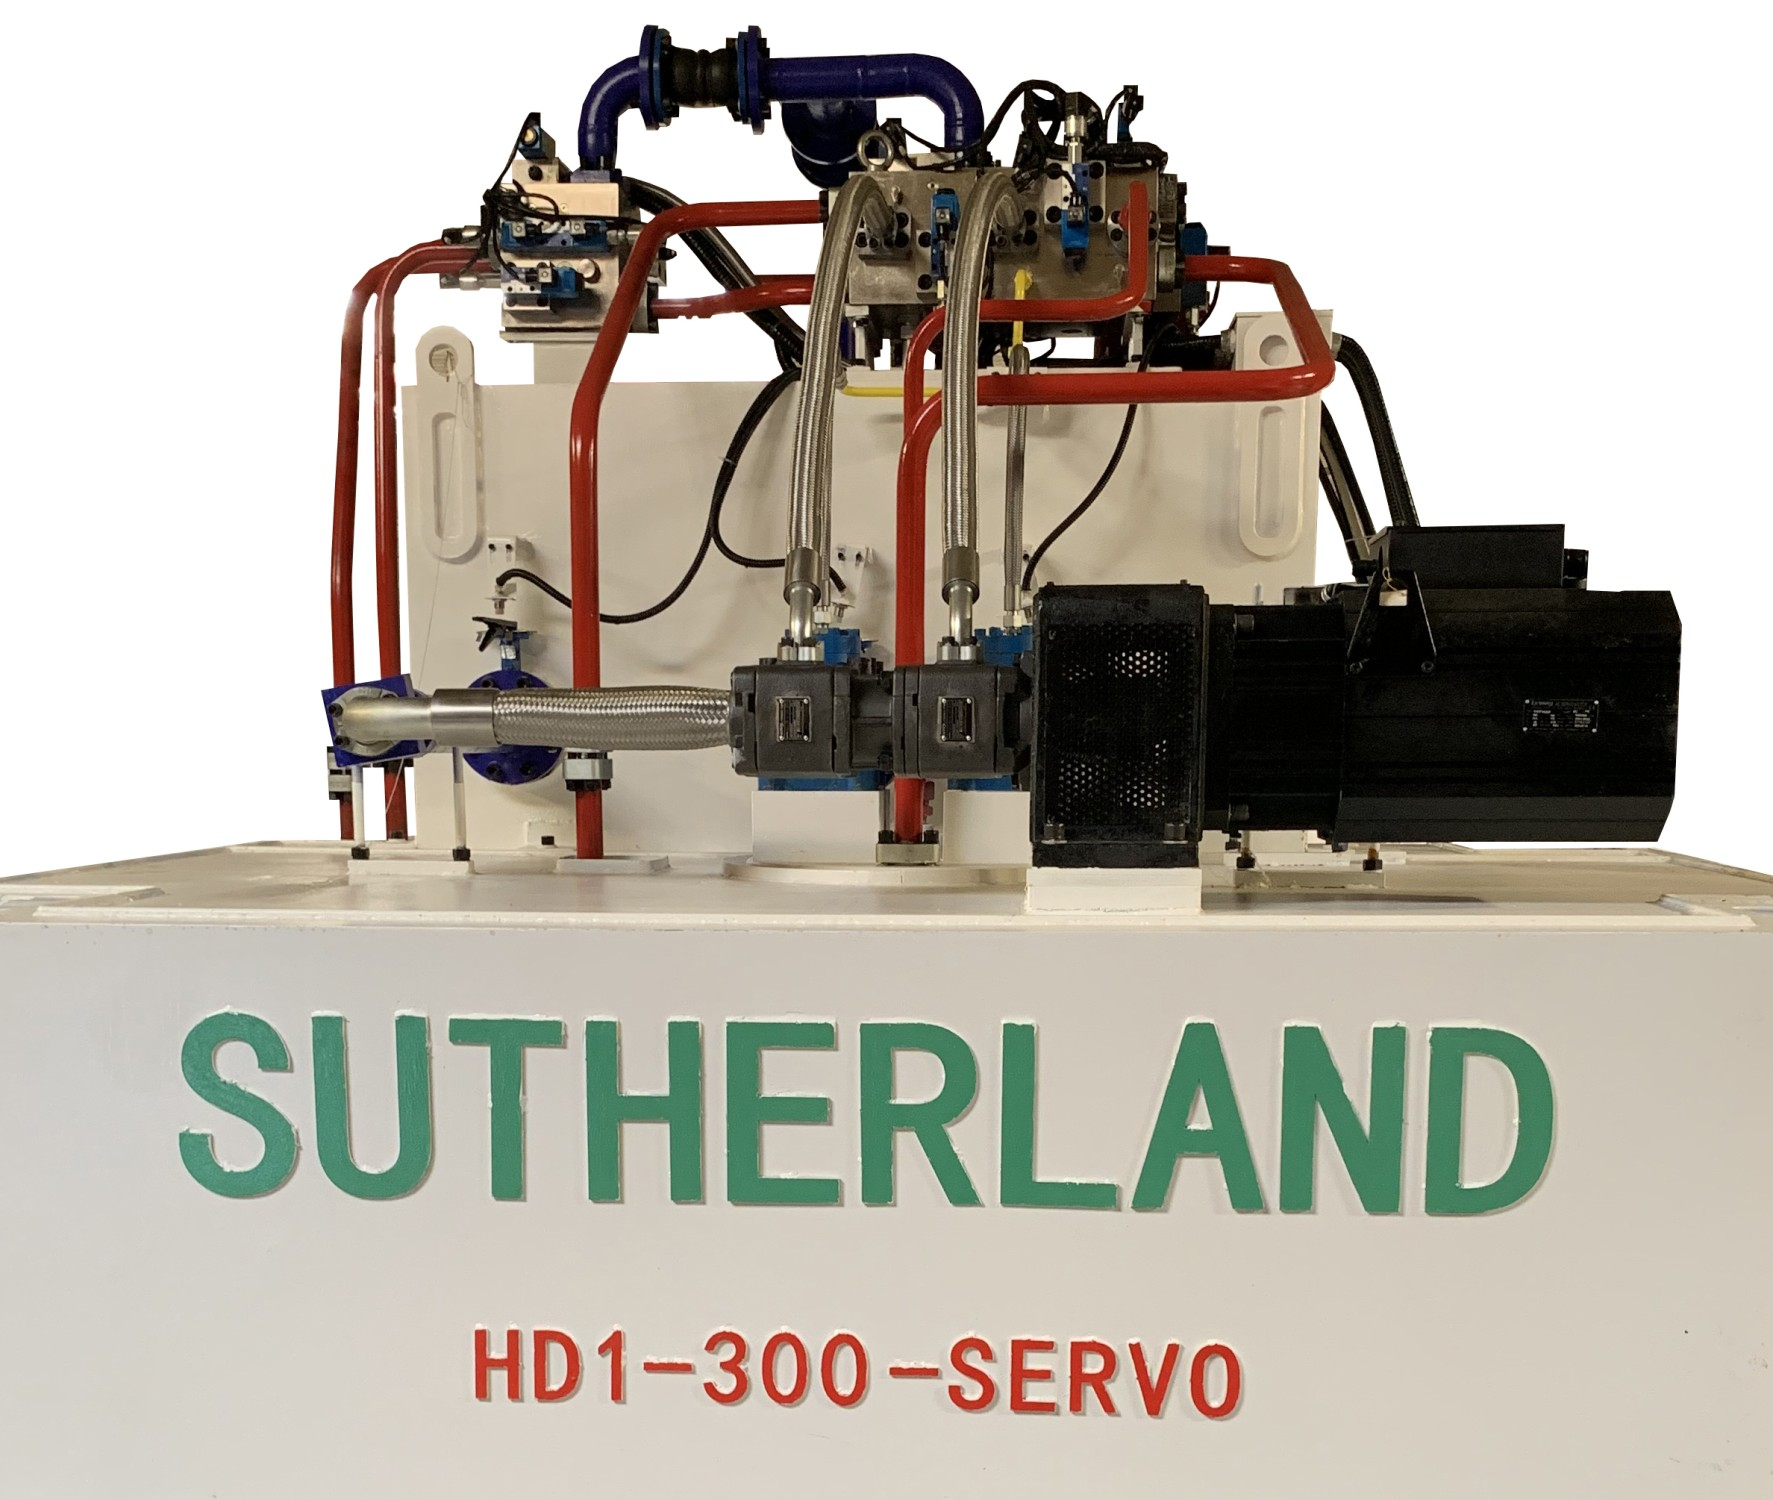 Sutherland Hydraulic Press Fluid Management System